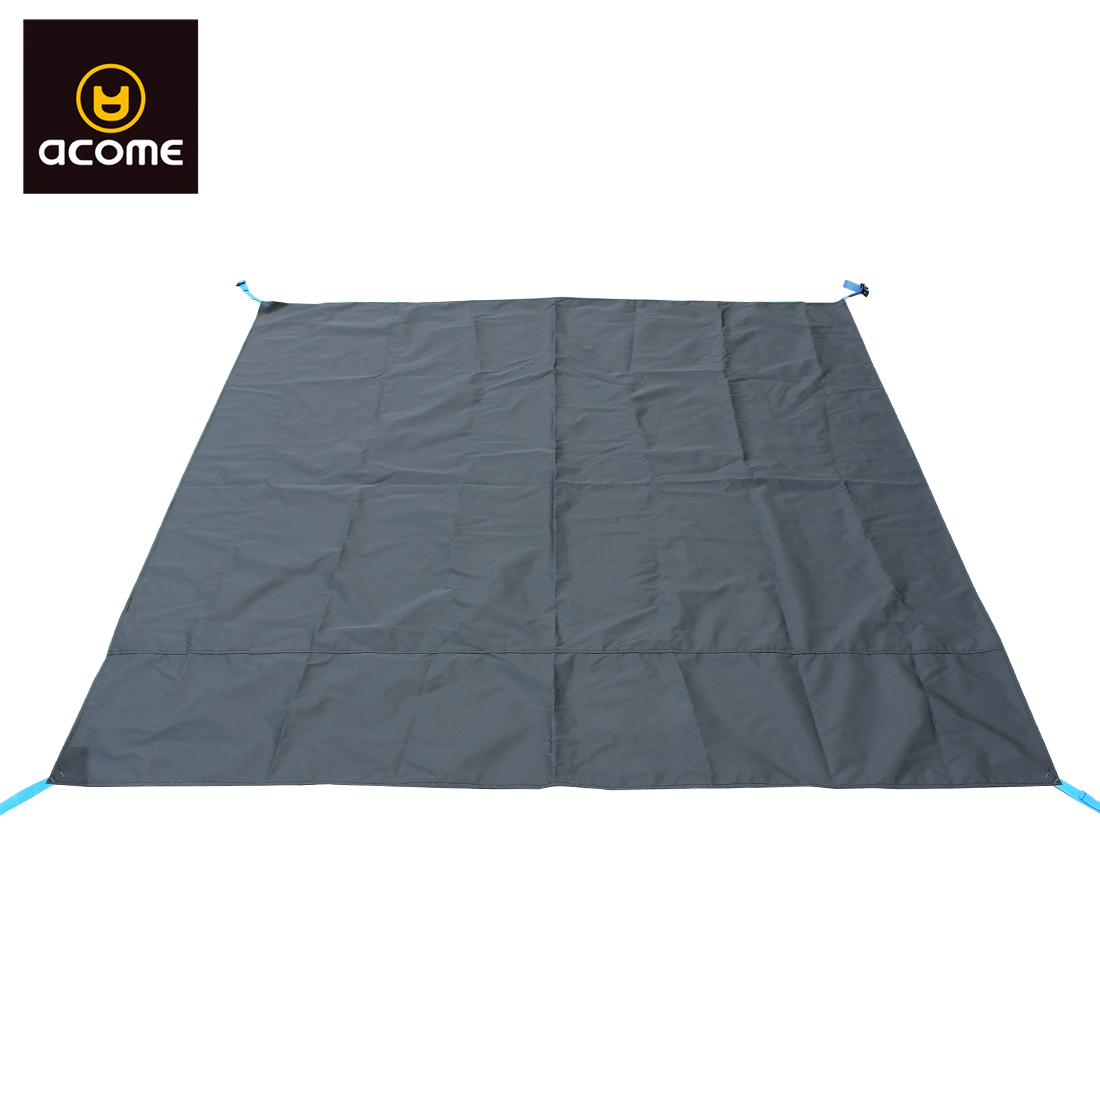 ACOME/Adam 3-4 people Oxford cloth outdoor waterproof wear-resistant tent floor mats Le House tent dedicated